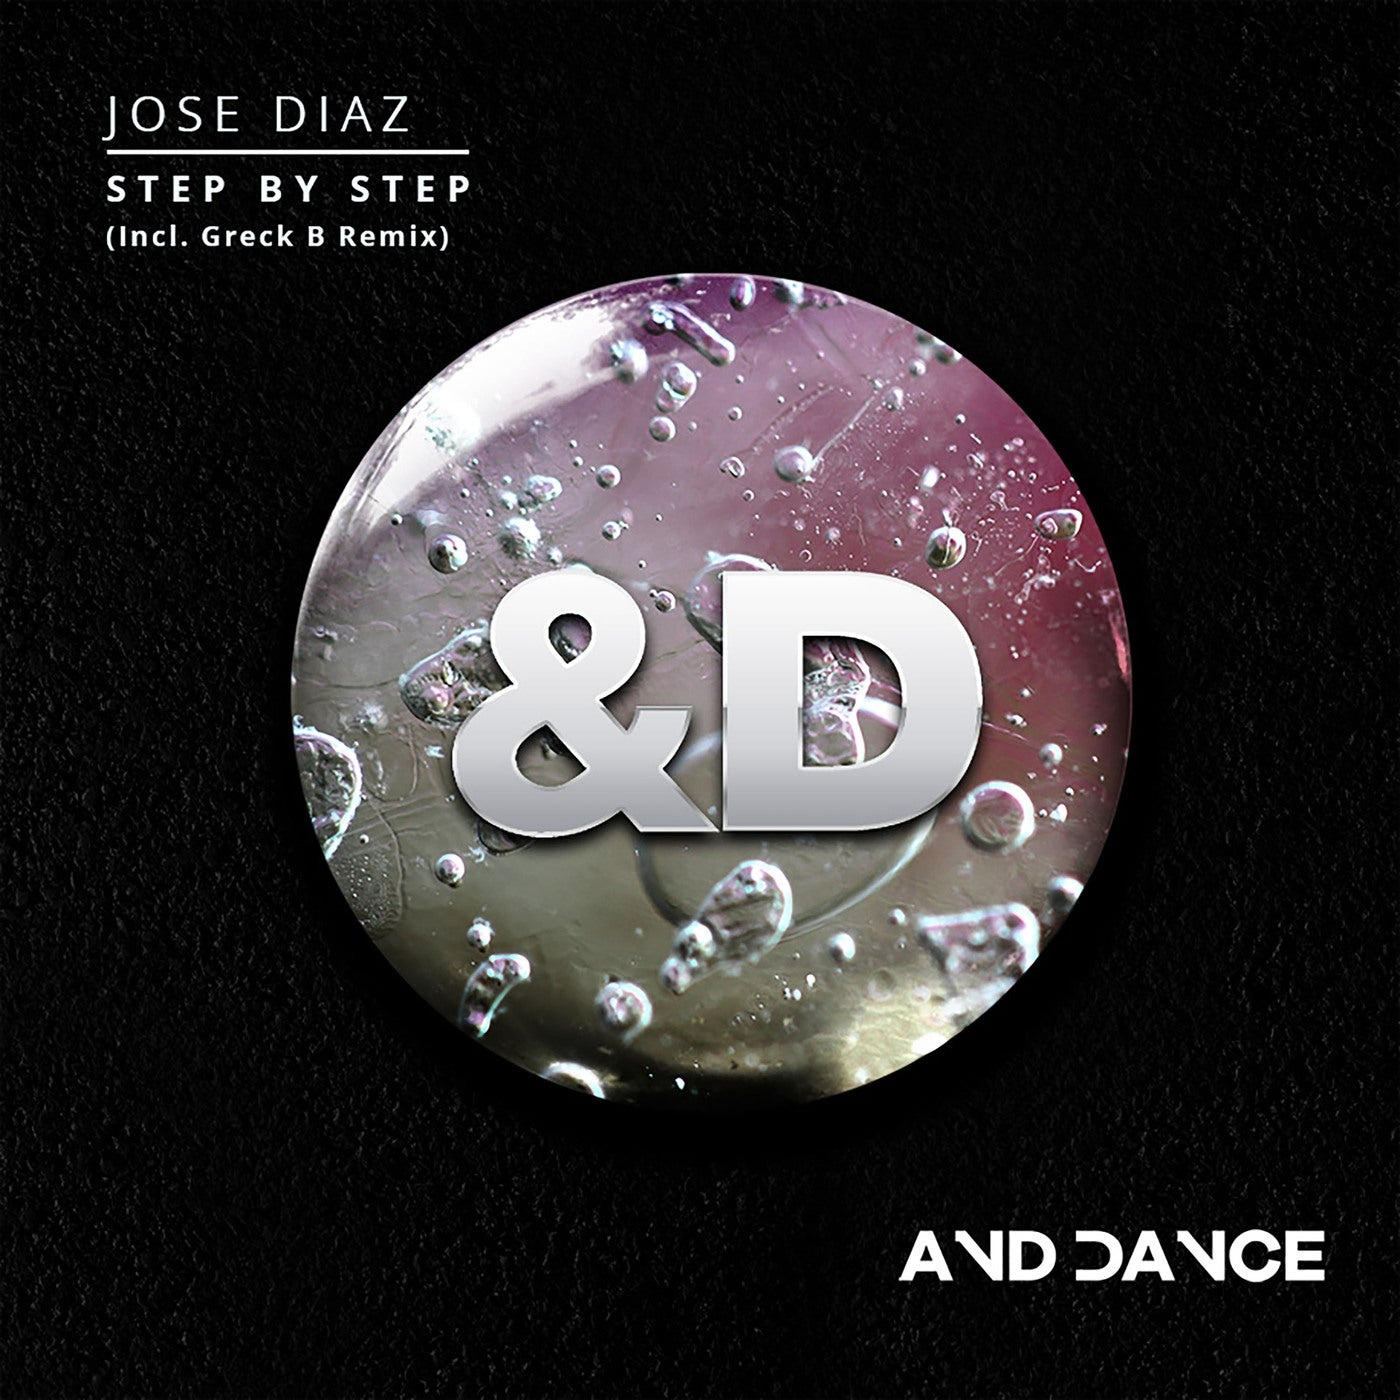 Cover - Jose Diaz - Step by Step (Greck B. Remix)